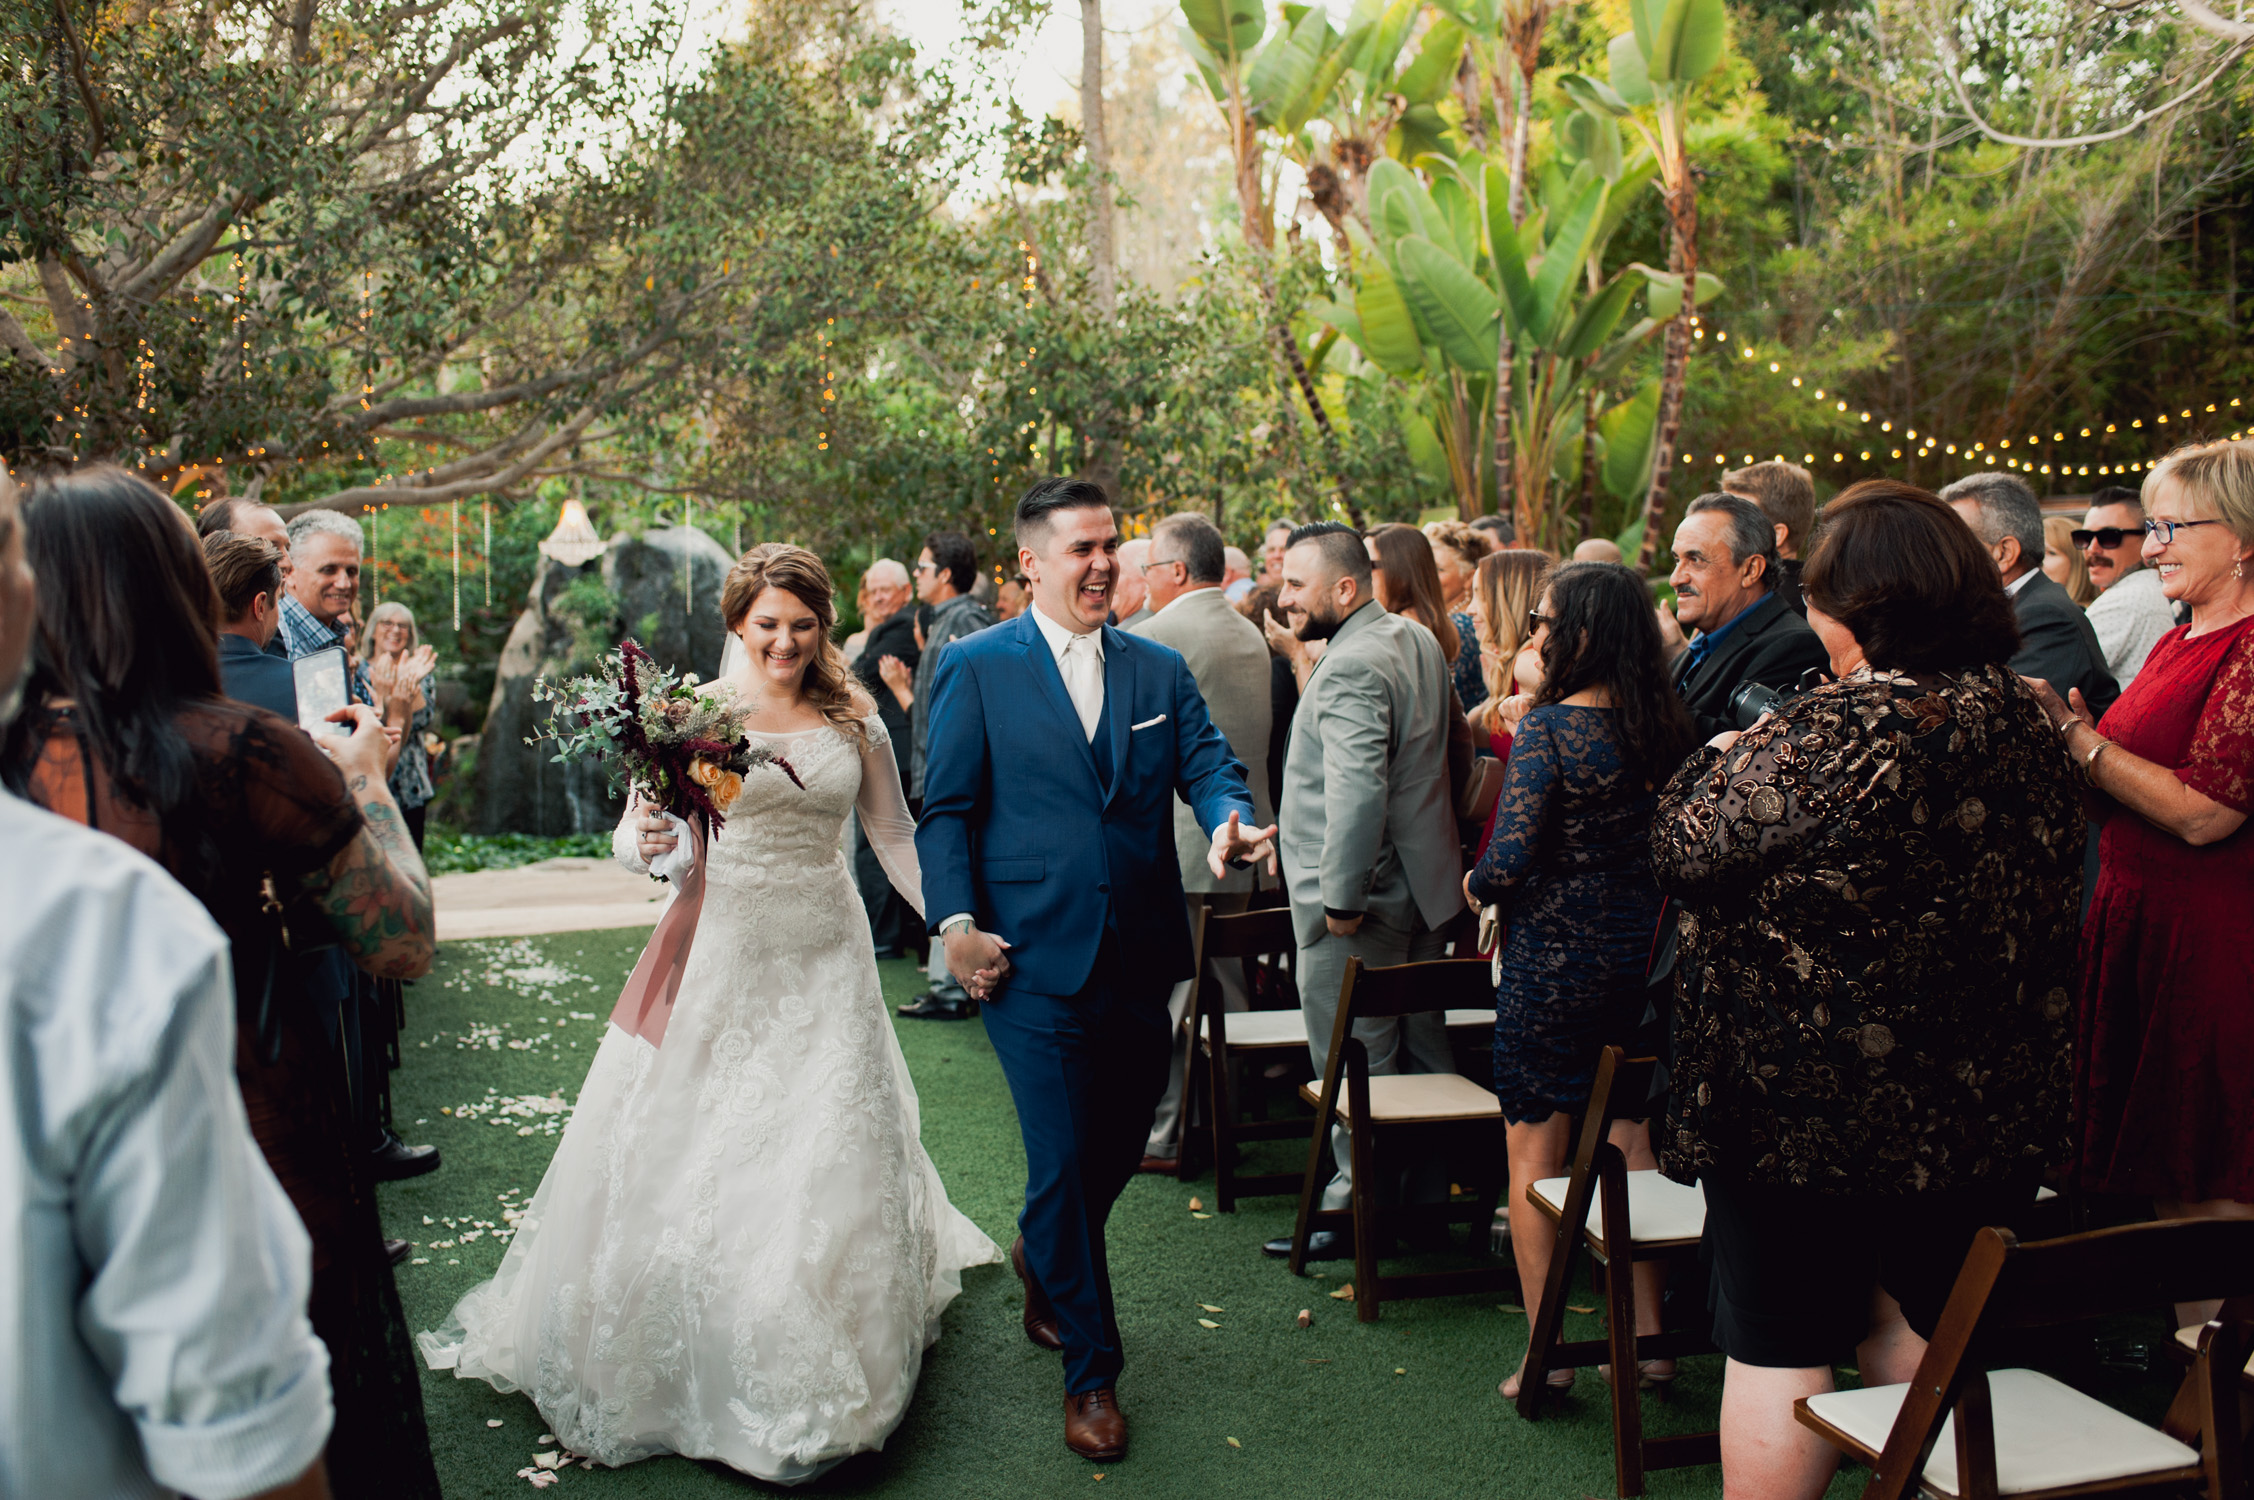 181103_Costa-wedding_492_web.jpg